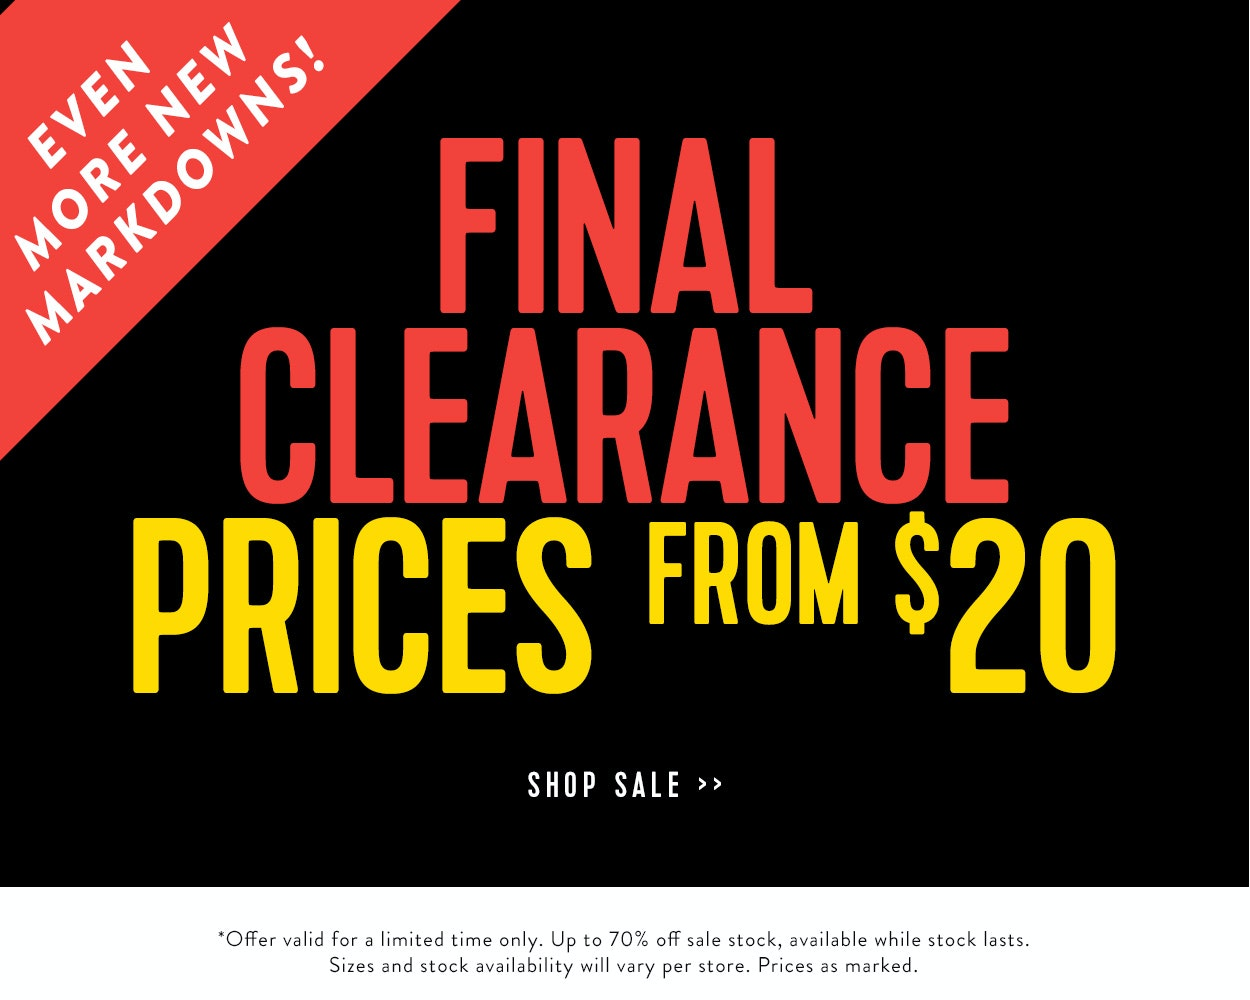 Final Clearance Prices from $20